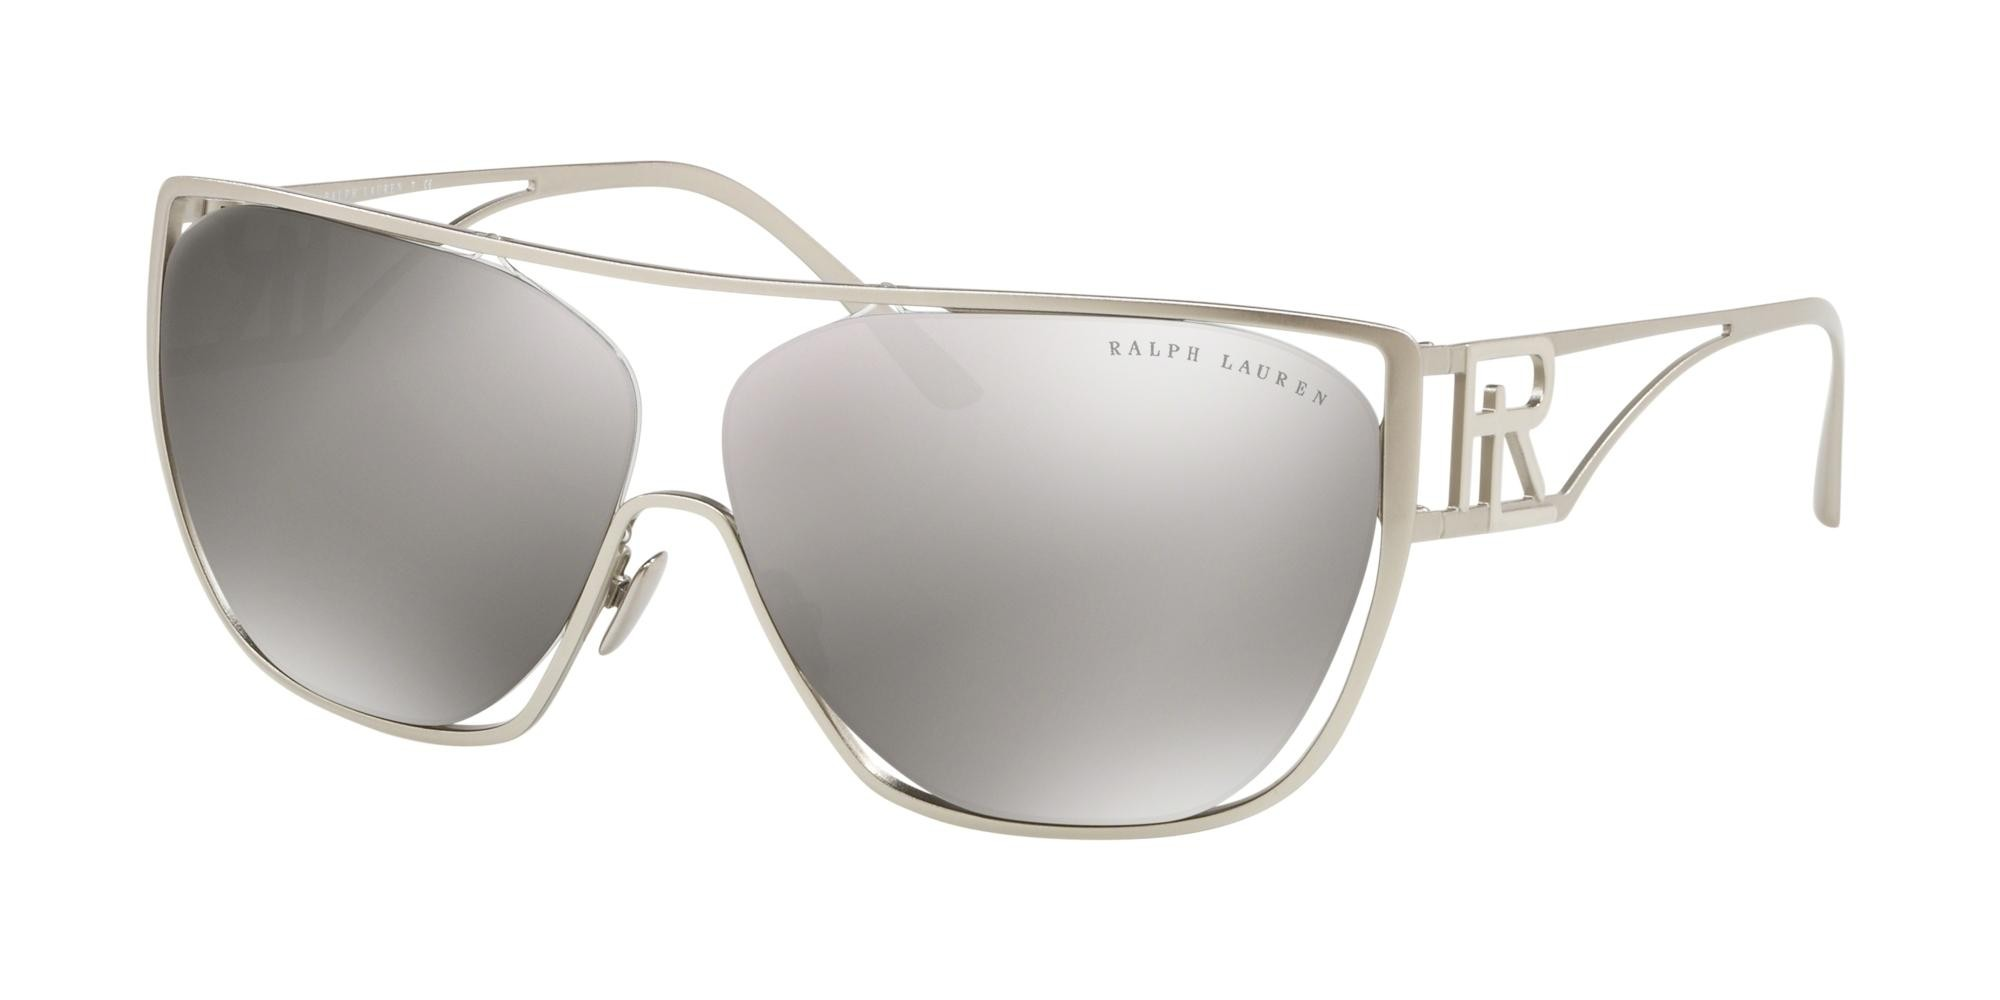 Ralph Lauren sunglasses RL 7063